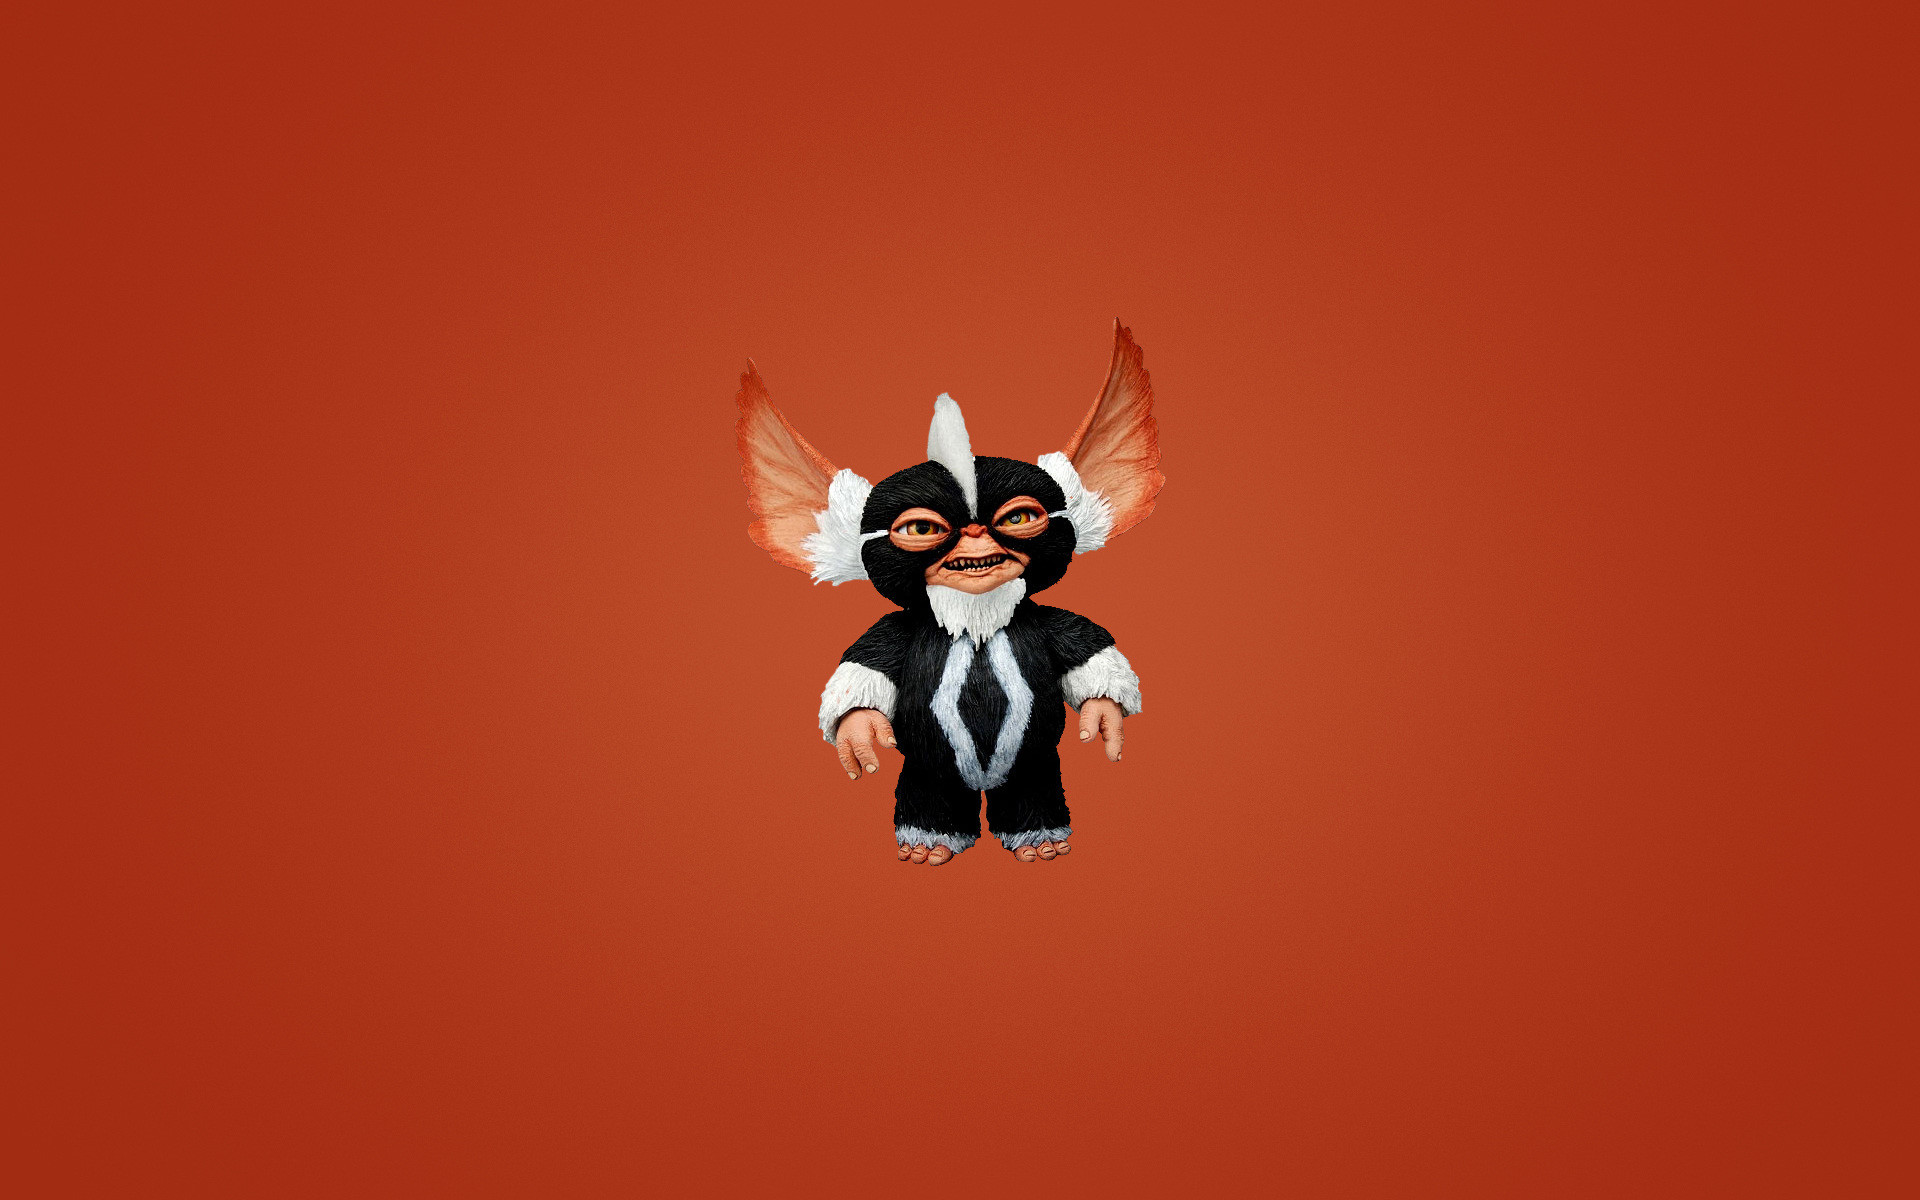 Res: 1920x1200, Download wallpaper gremlin, smile, monster, striped, gremlin, mohawk with  resolution 1366 x 768 and # 27503